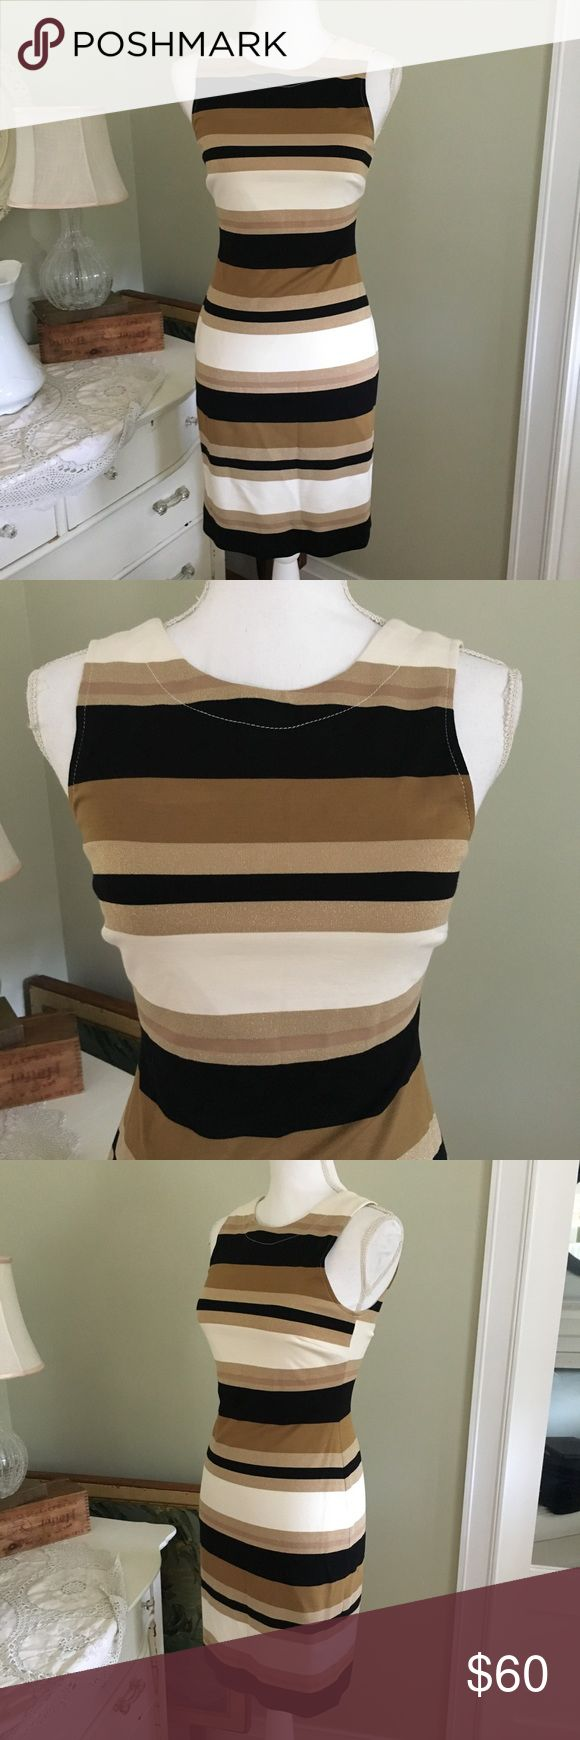 "NWT Banana Republic Stripe Cocktail Dress This NWT gorgeous dress from Banana Republic is sleeveless and features black, cream and tan horizontal stripes, a V shaped back and back zipper. Size: 2P. Chest: 14.75"". Waist: 13"". Length: 35.25"". Banana Republic Dresses Midi"